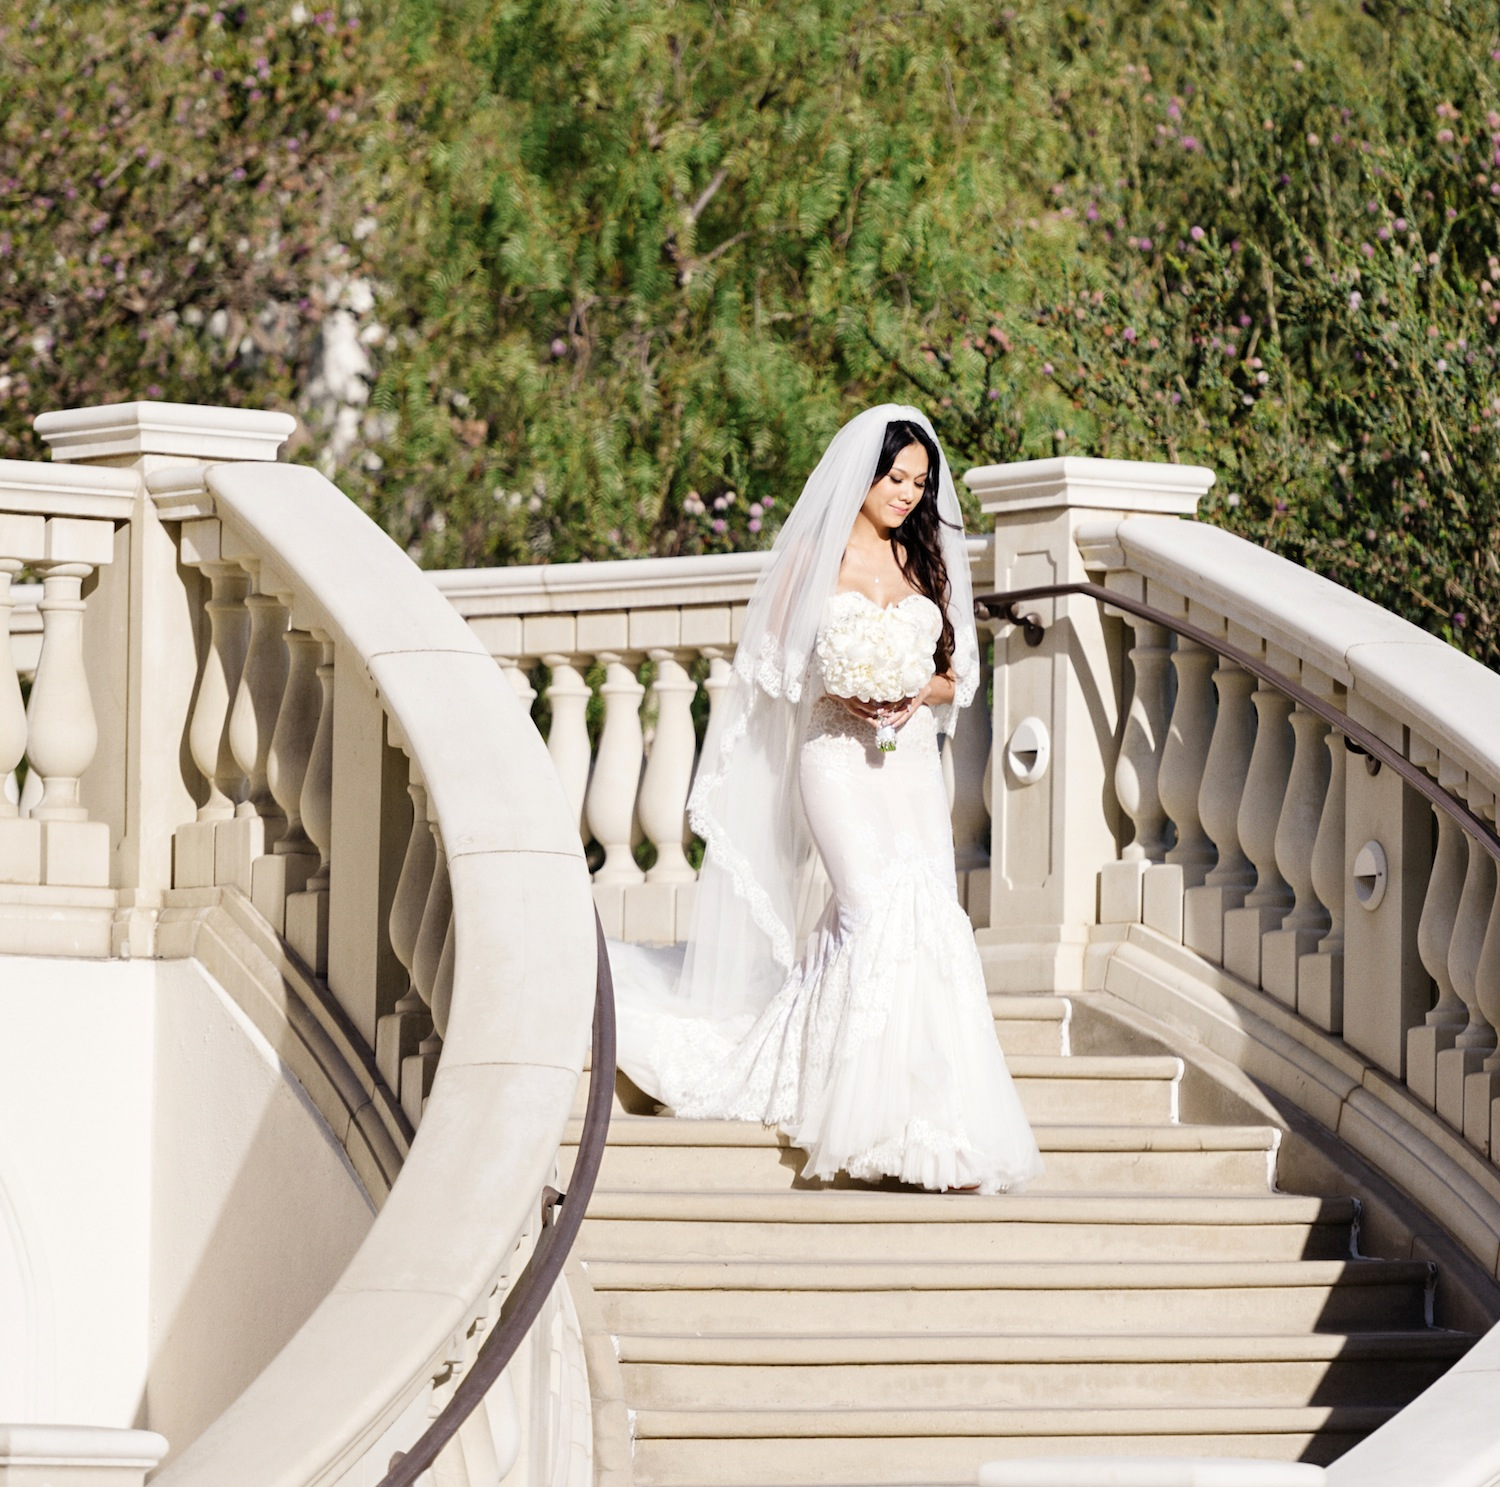 Inbal dror br 12 5 vip 6 800 size 0 used wedding dresses for Places to donate wedding dresses